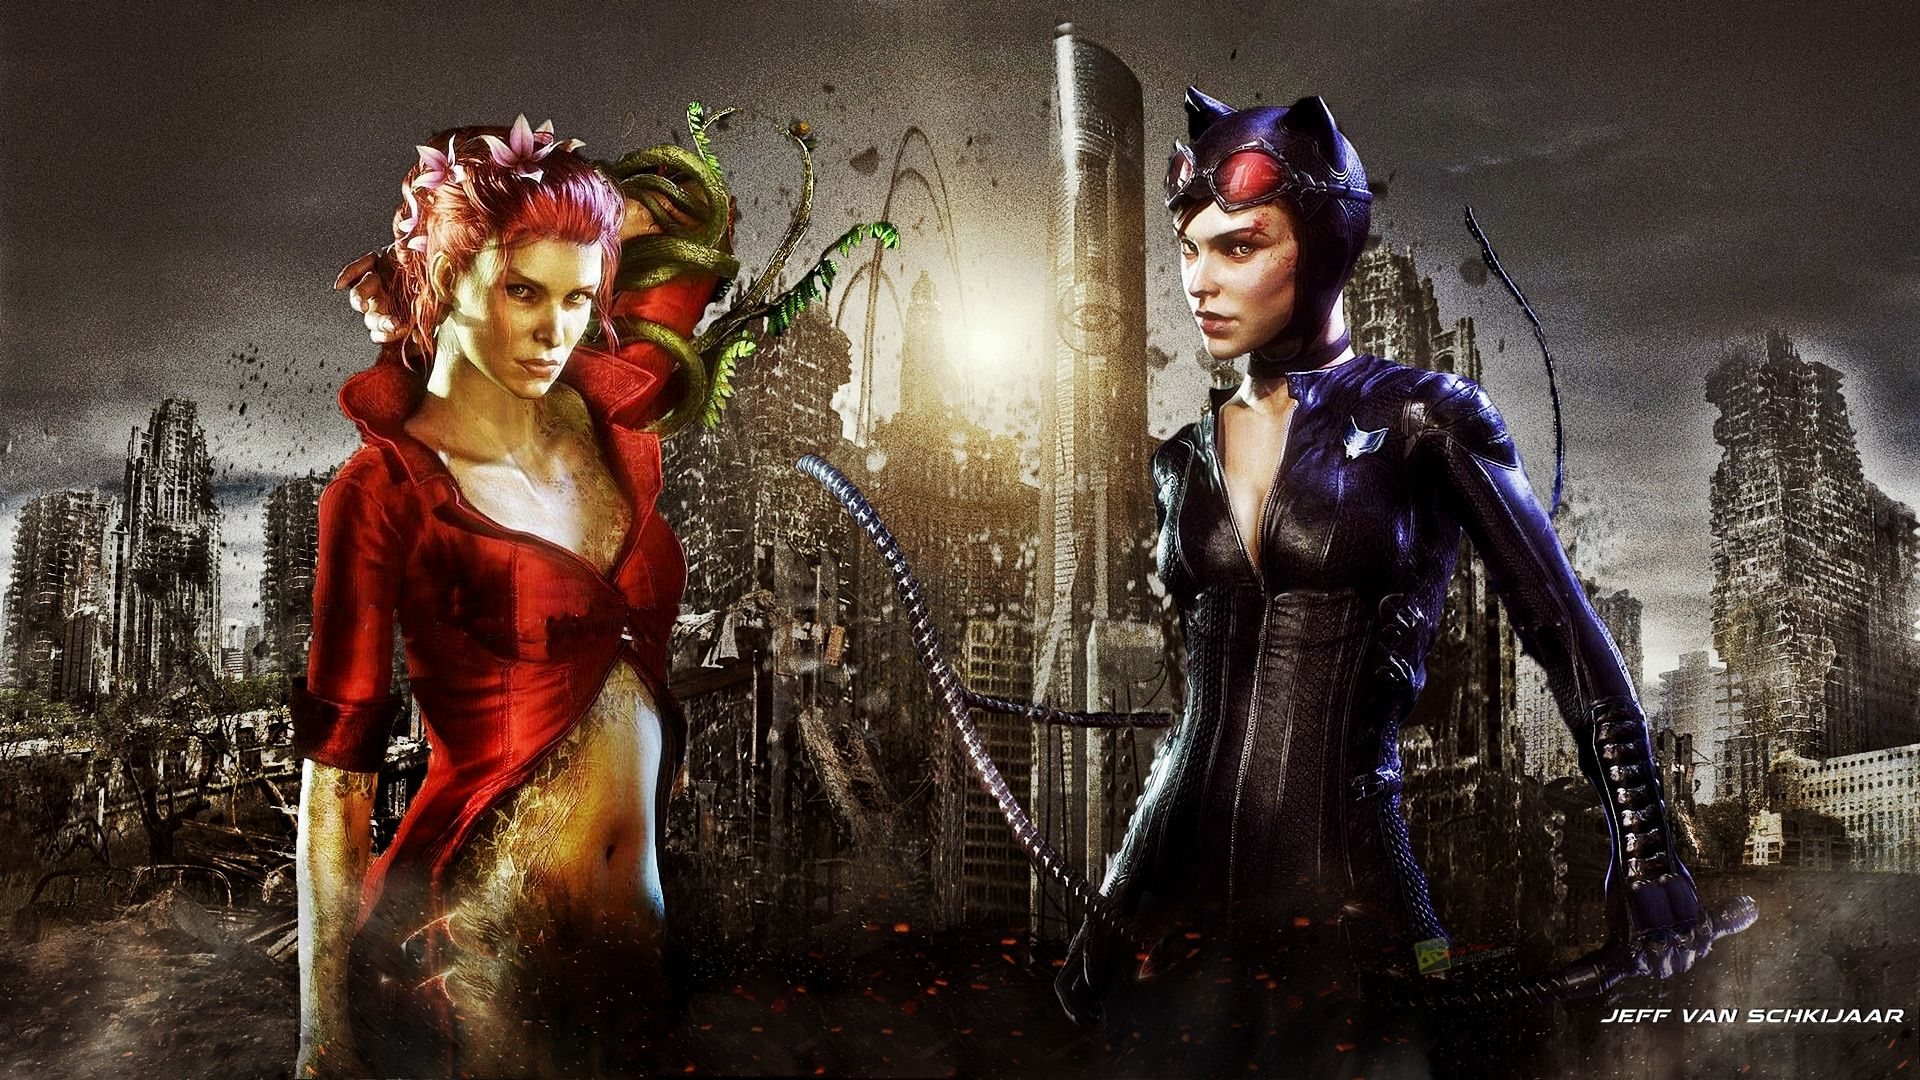 Catwoman Poison Ivy Batman Arkham Knight Wallpaper By Jeffery10 On DeviantArt Ritter